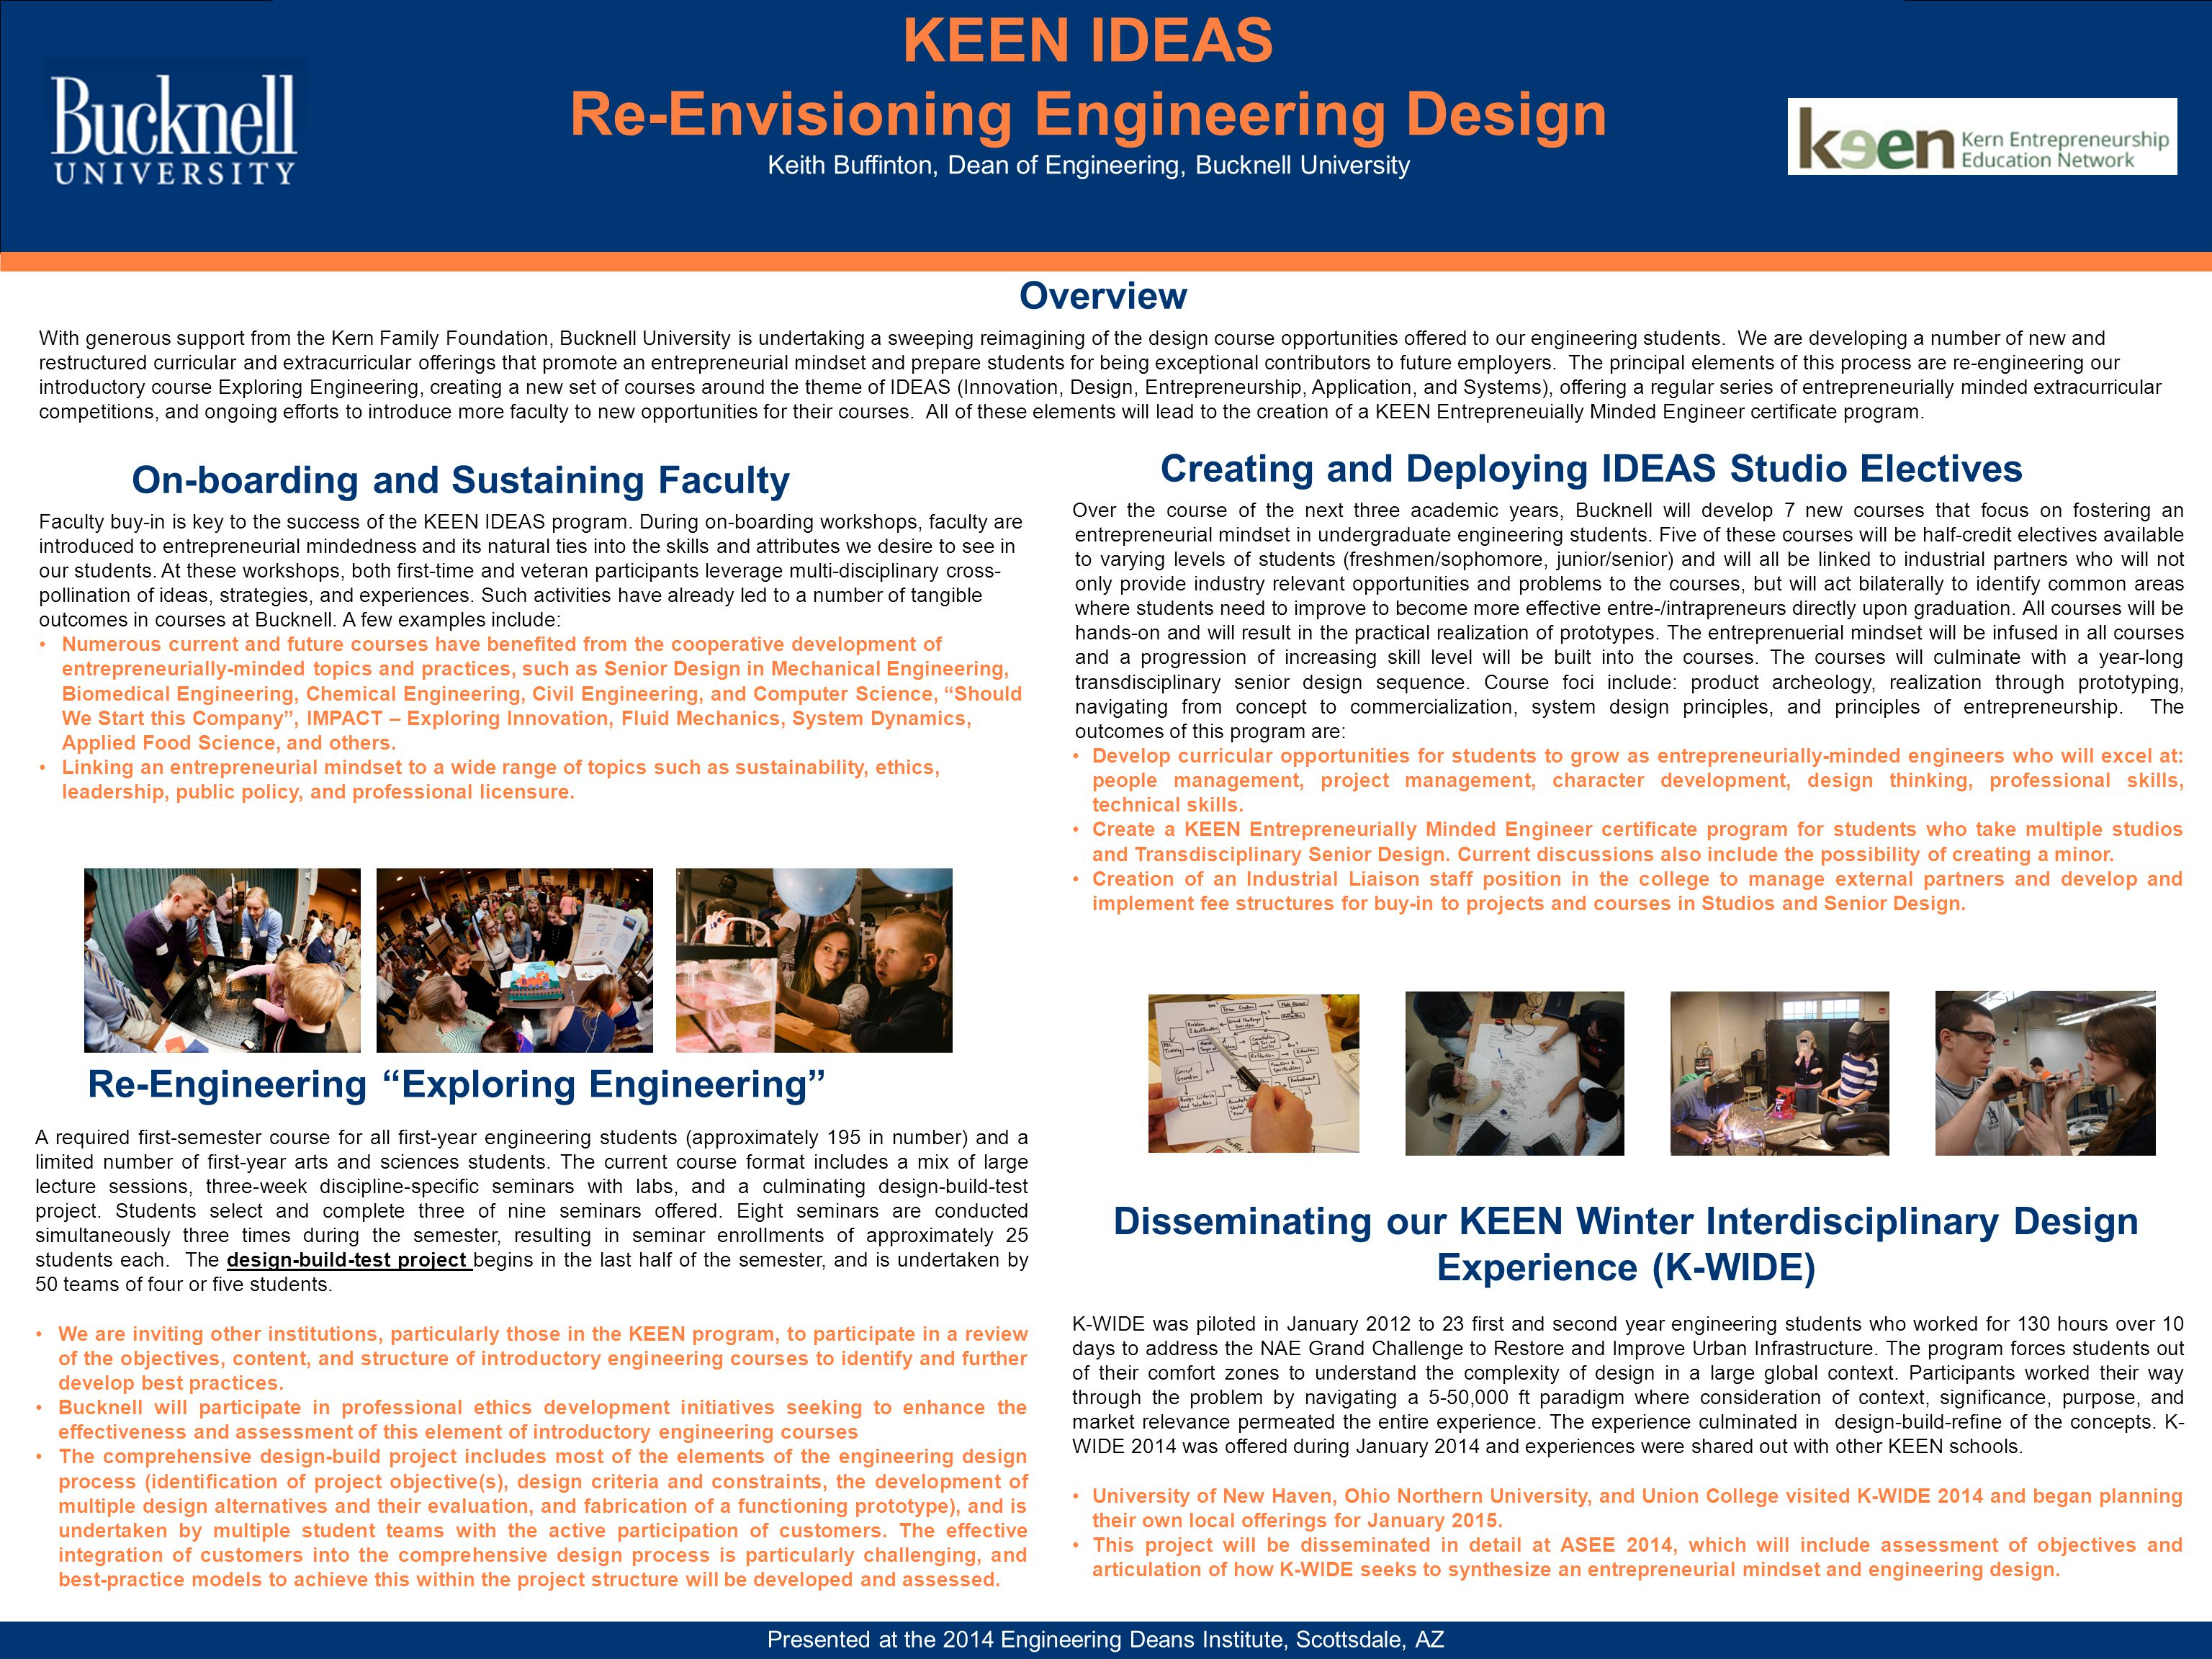 KEEN IDEAS Re-Envisioning Engineering Design Keith Buffinton, Dean of Engineering, Bucknell University Presented at the 2014 Engineering Deans Institute, Scottsdale, AZ Overview With generous support from the Kern Family Foundation, Bucknell University is undertaking a sweeping reimagining of the design course opportunities offered to our engineering students.